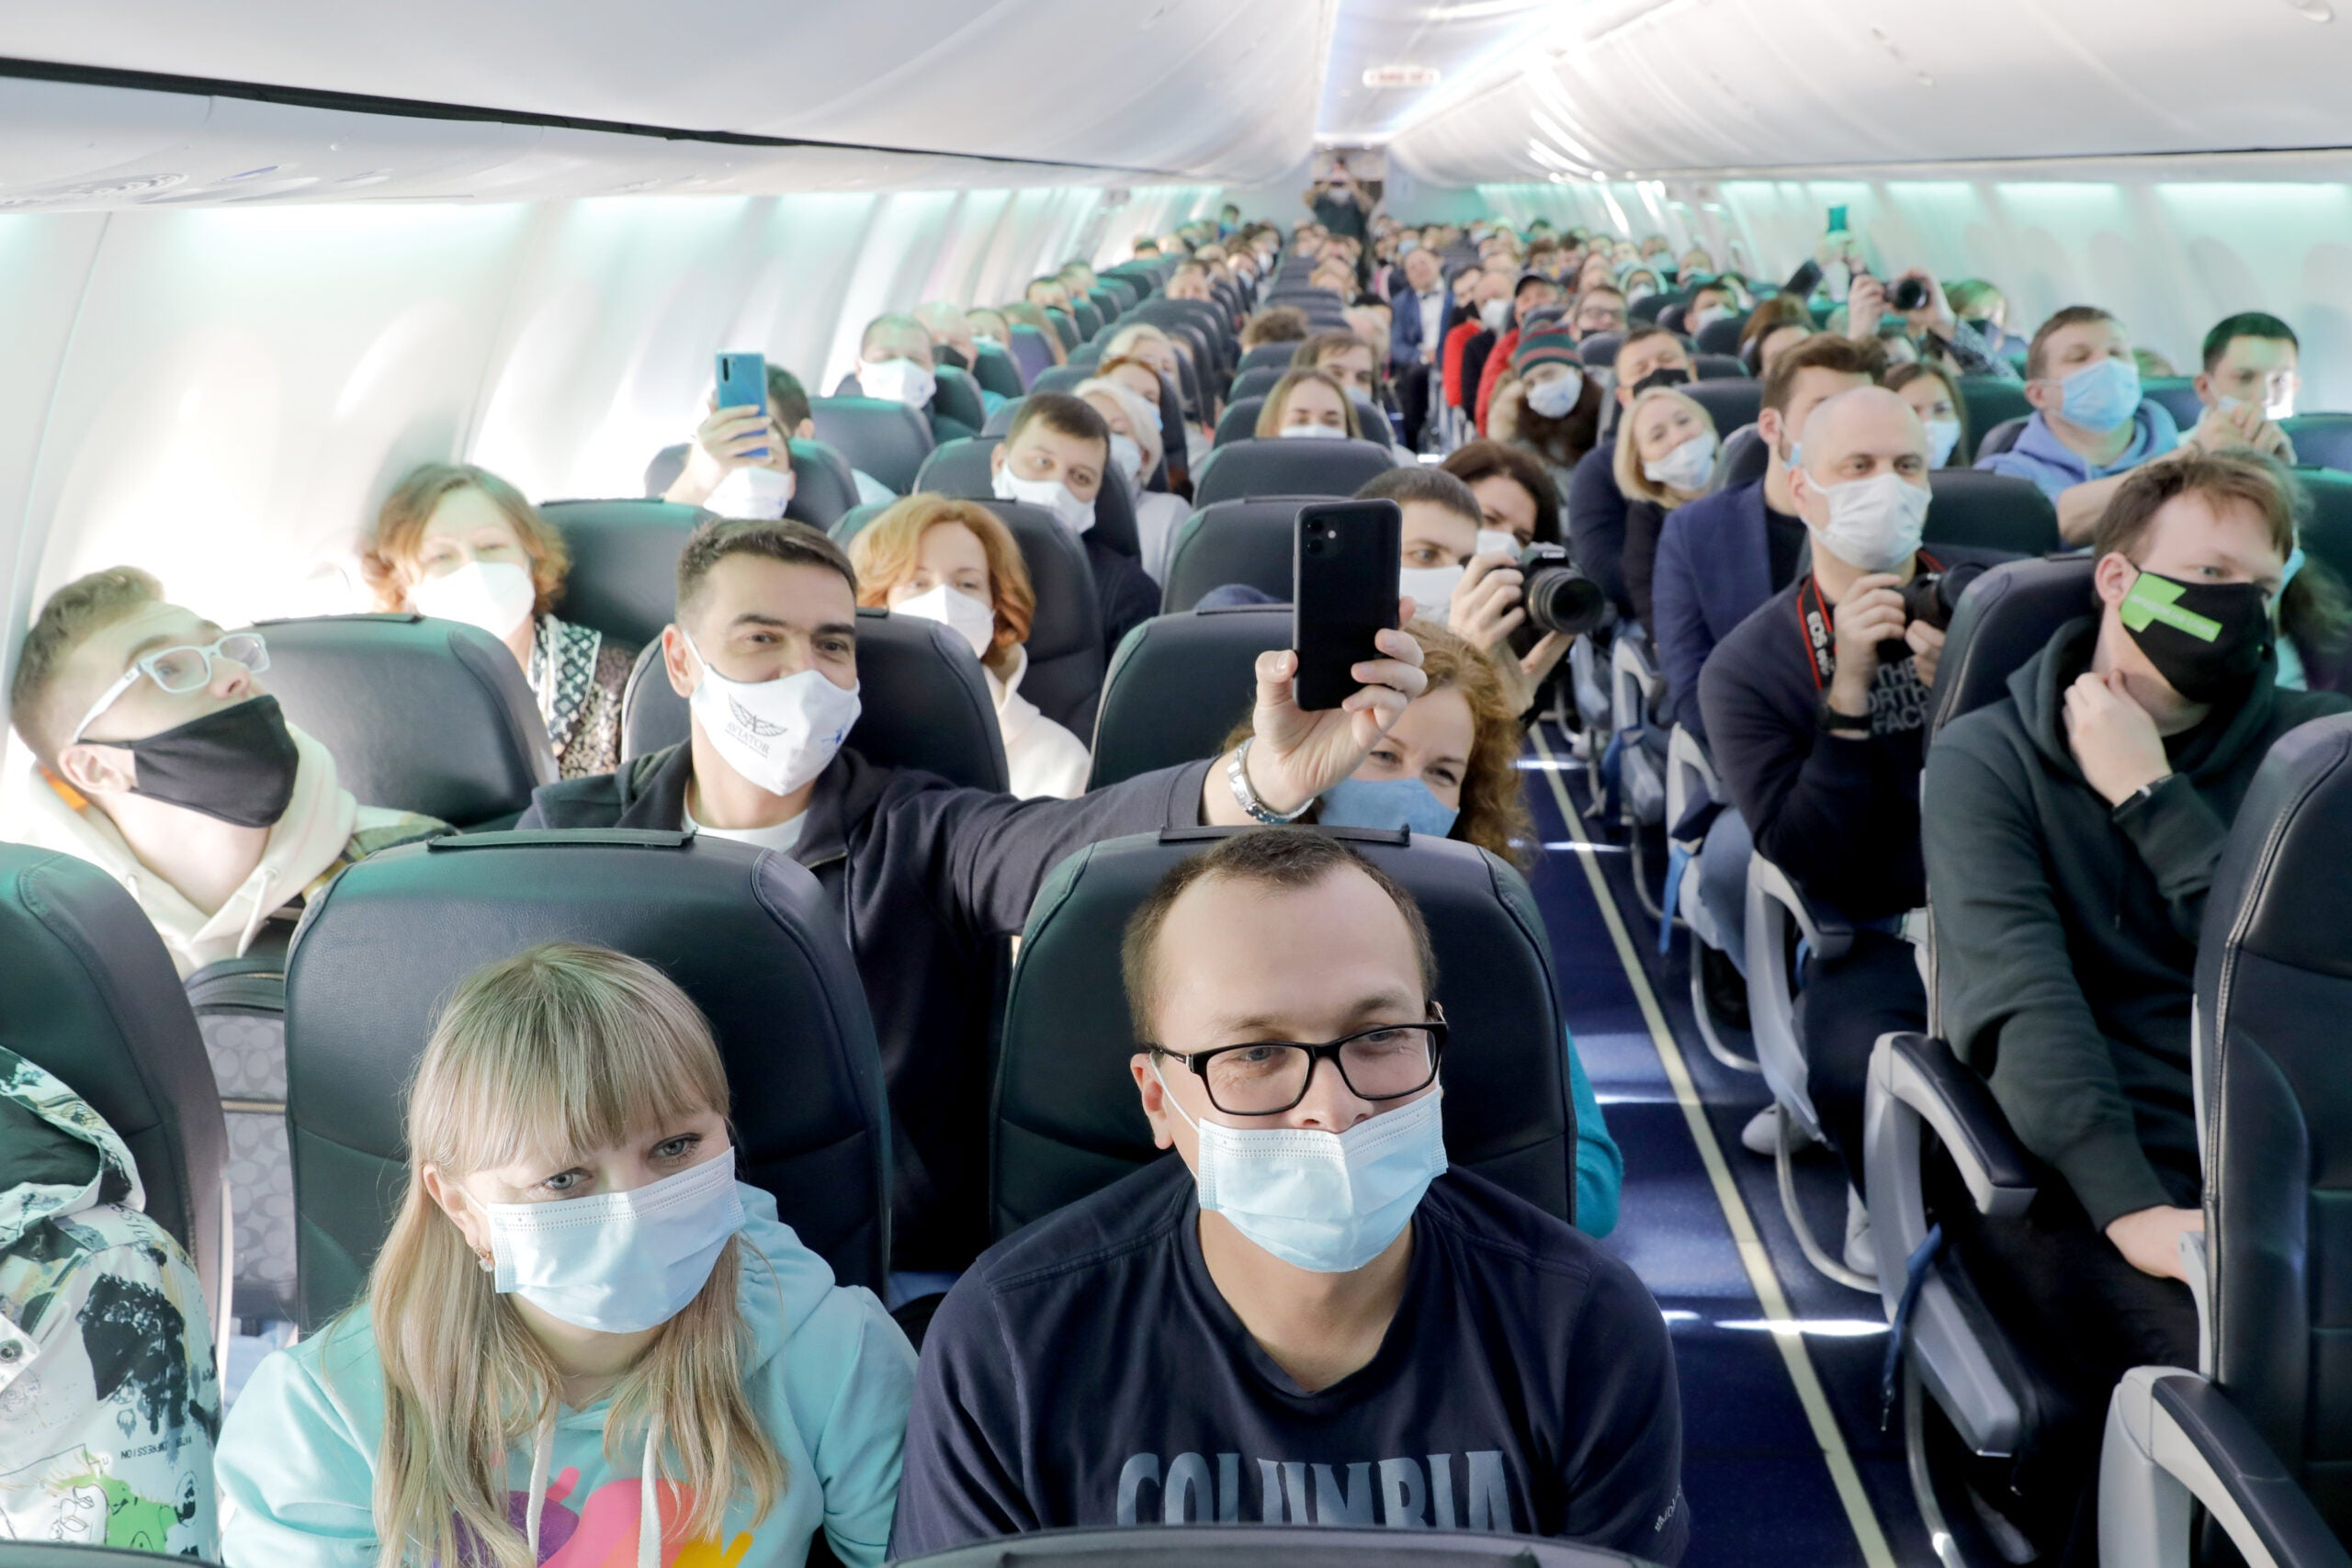 6 passenger types I hate getting stuck next to on a plane - The Points Guy